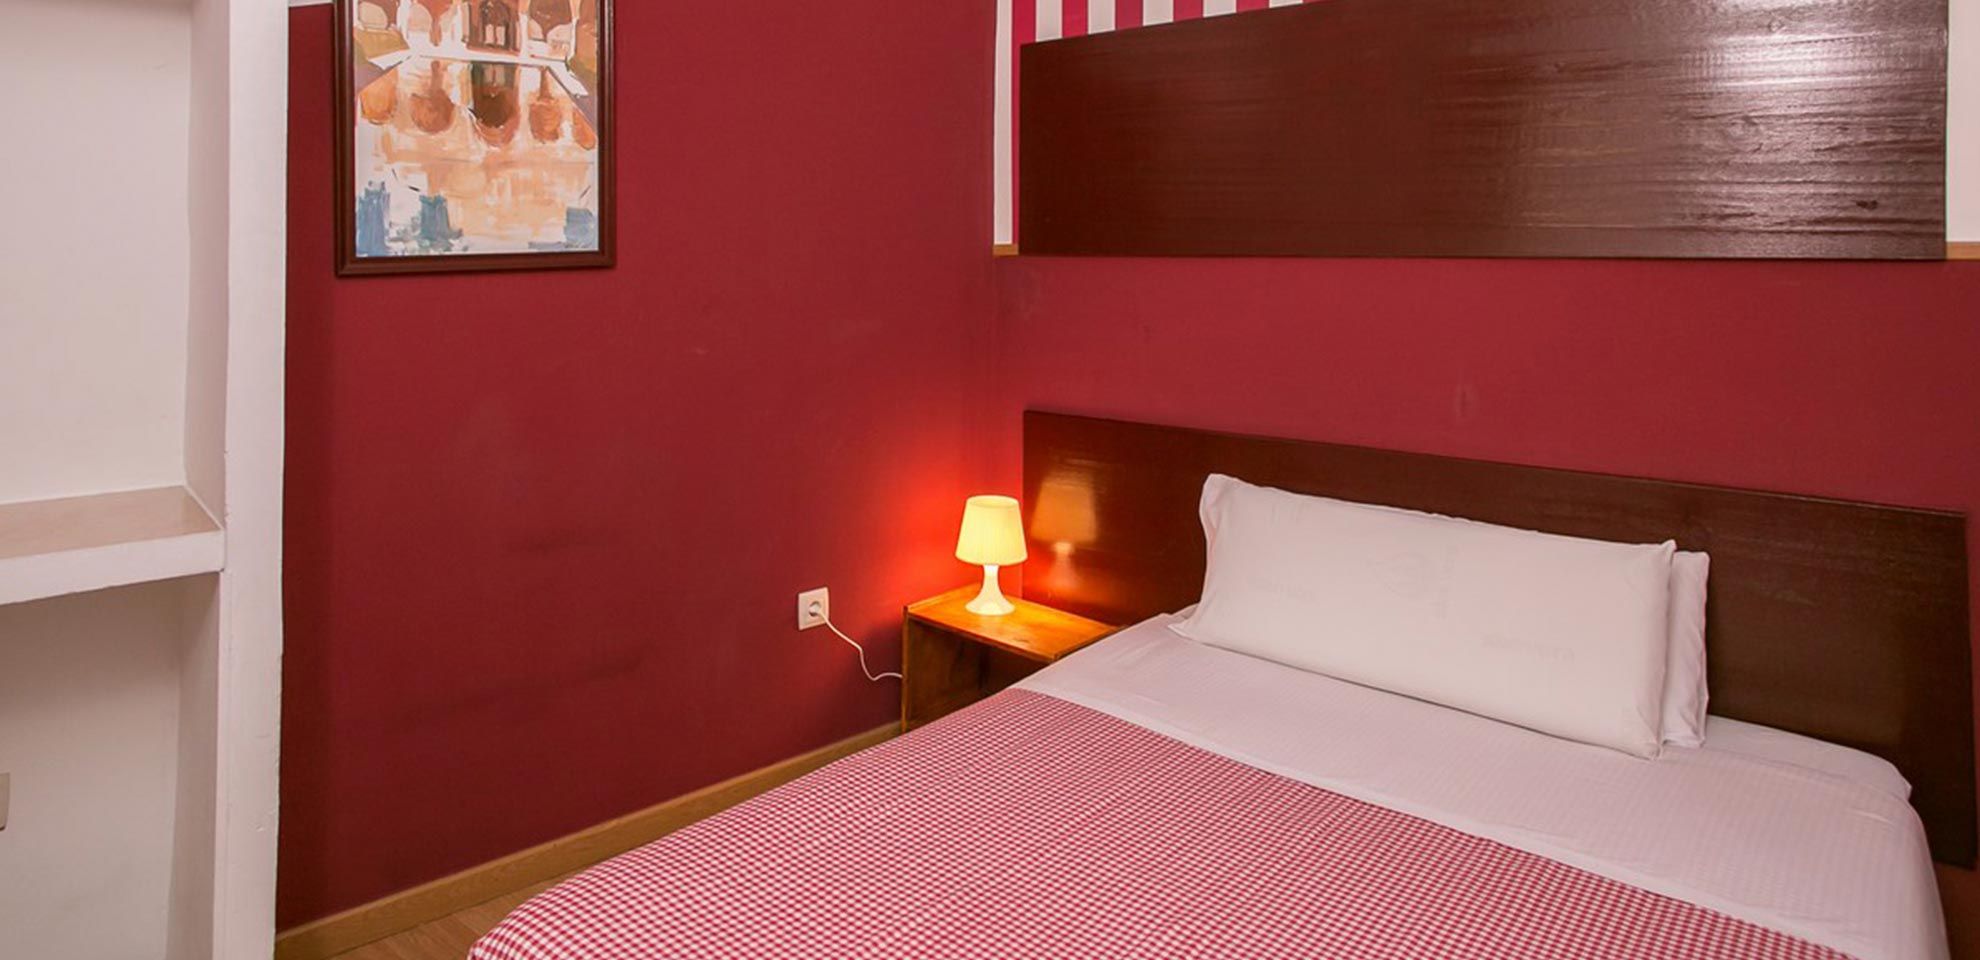 Hostal centro Madrid